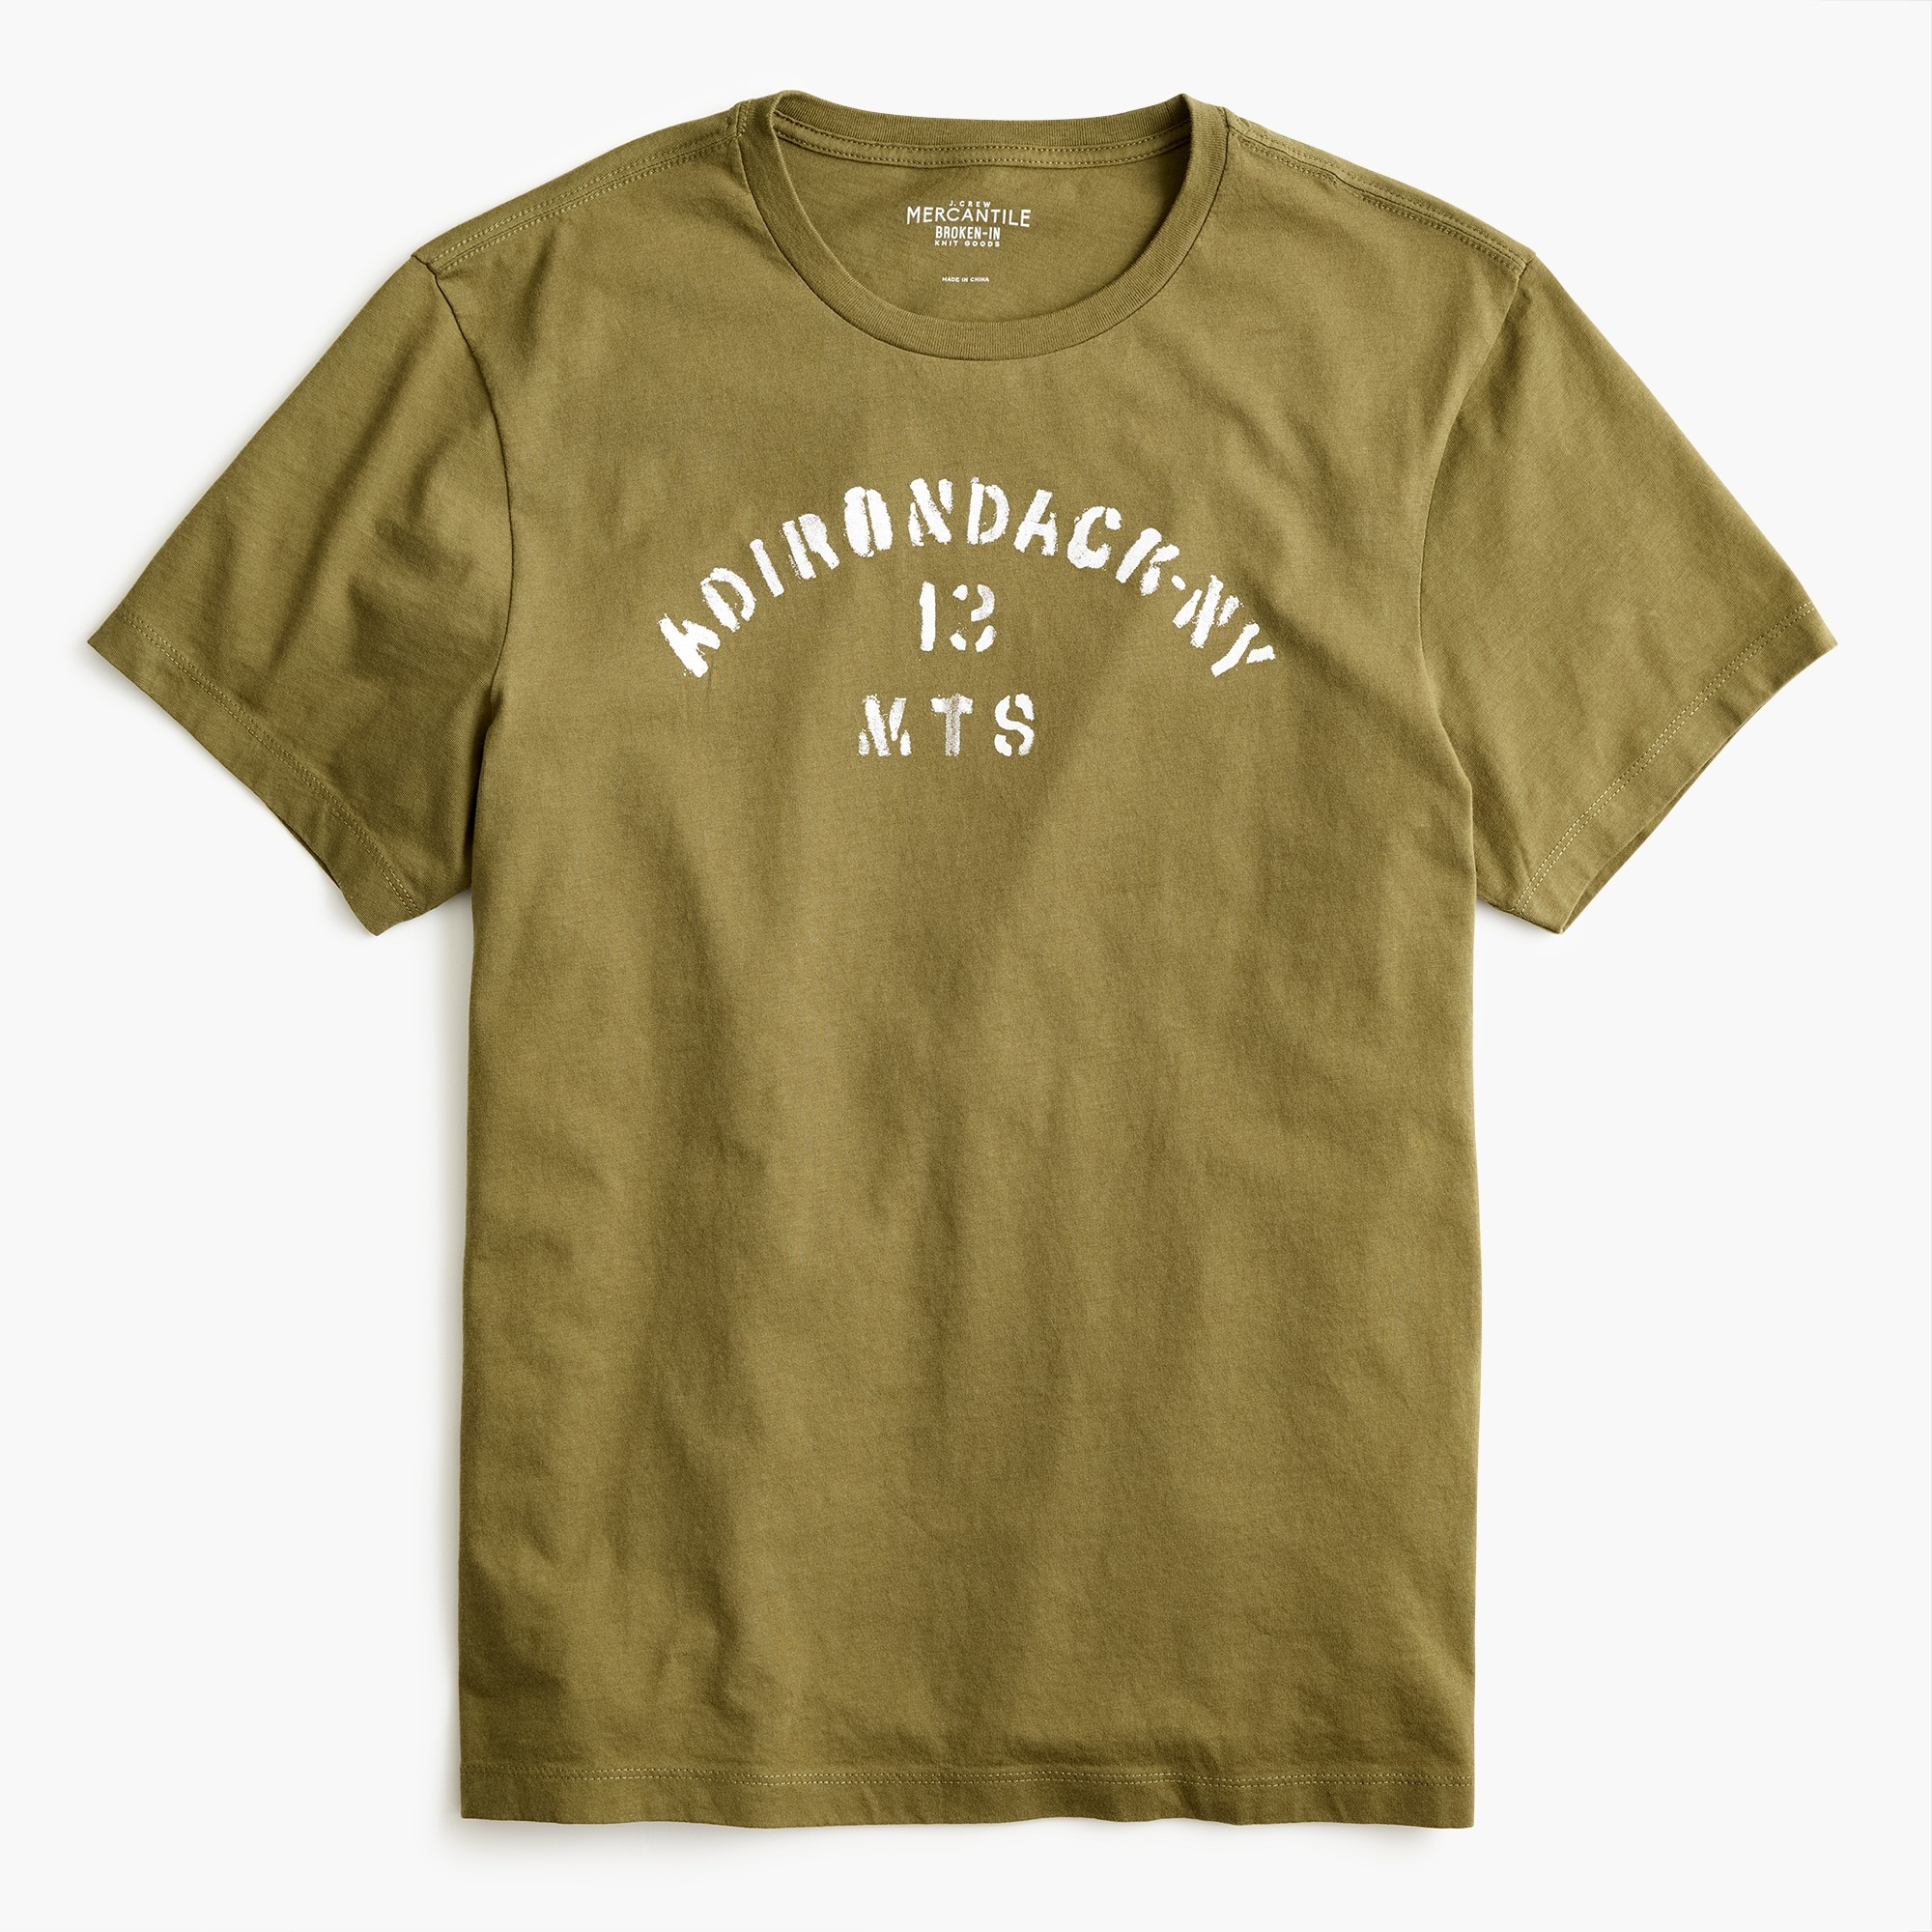 J.Crew Mercantile Adirondack mountains graphic T-shirt